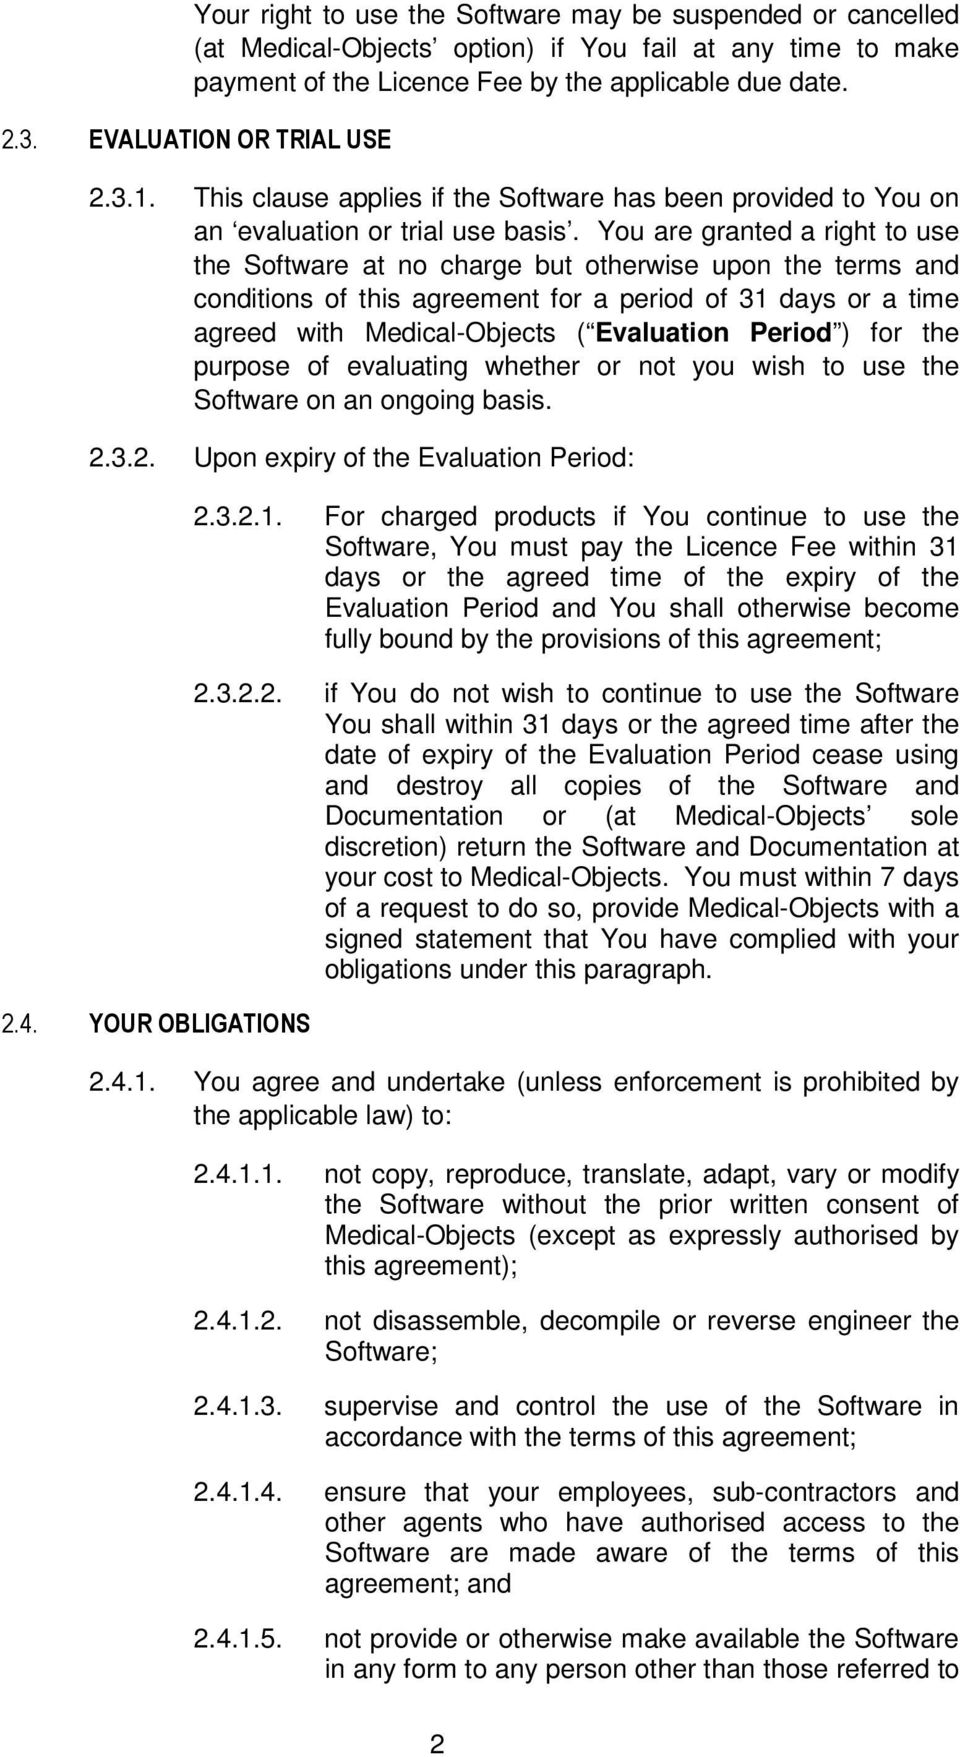 You are granted a right to use the Software at no charge but otherwise upon the terms and conditions of this agreement for a period of 31 days or a time agreed with Medical-Objects ( Evaluation